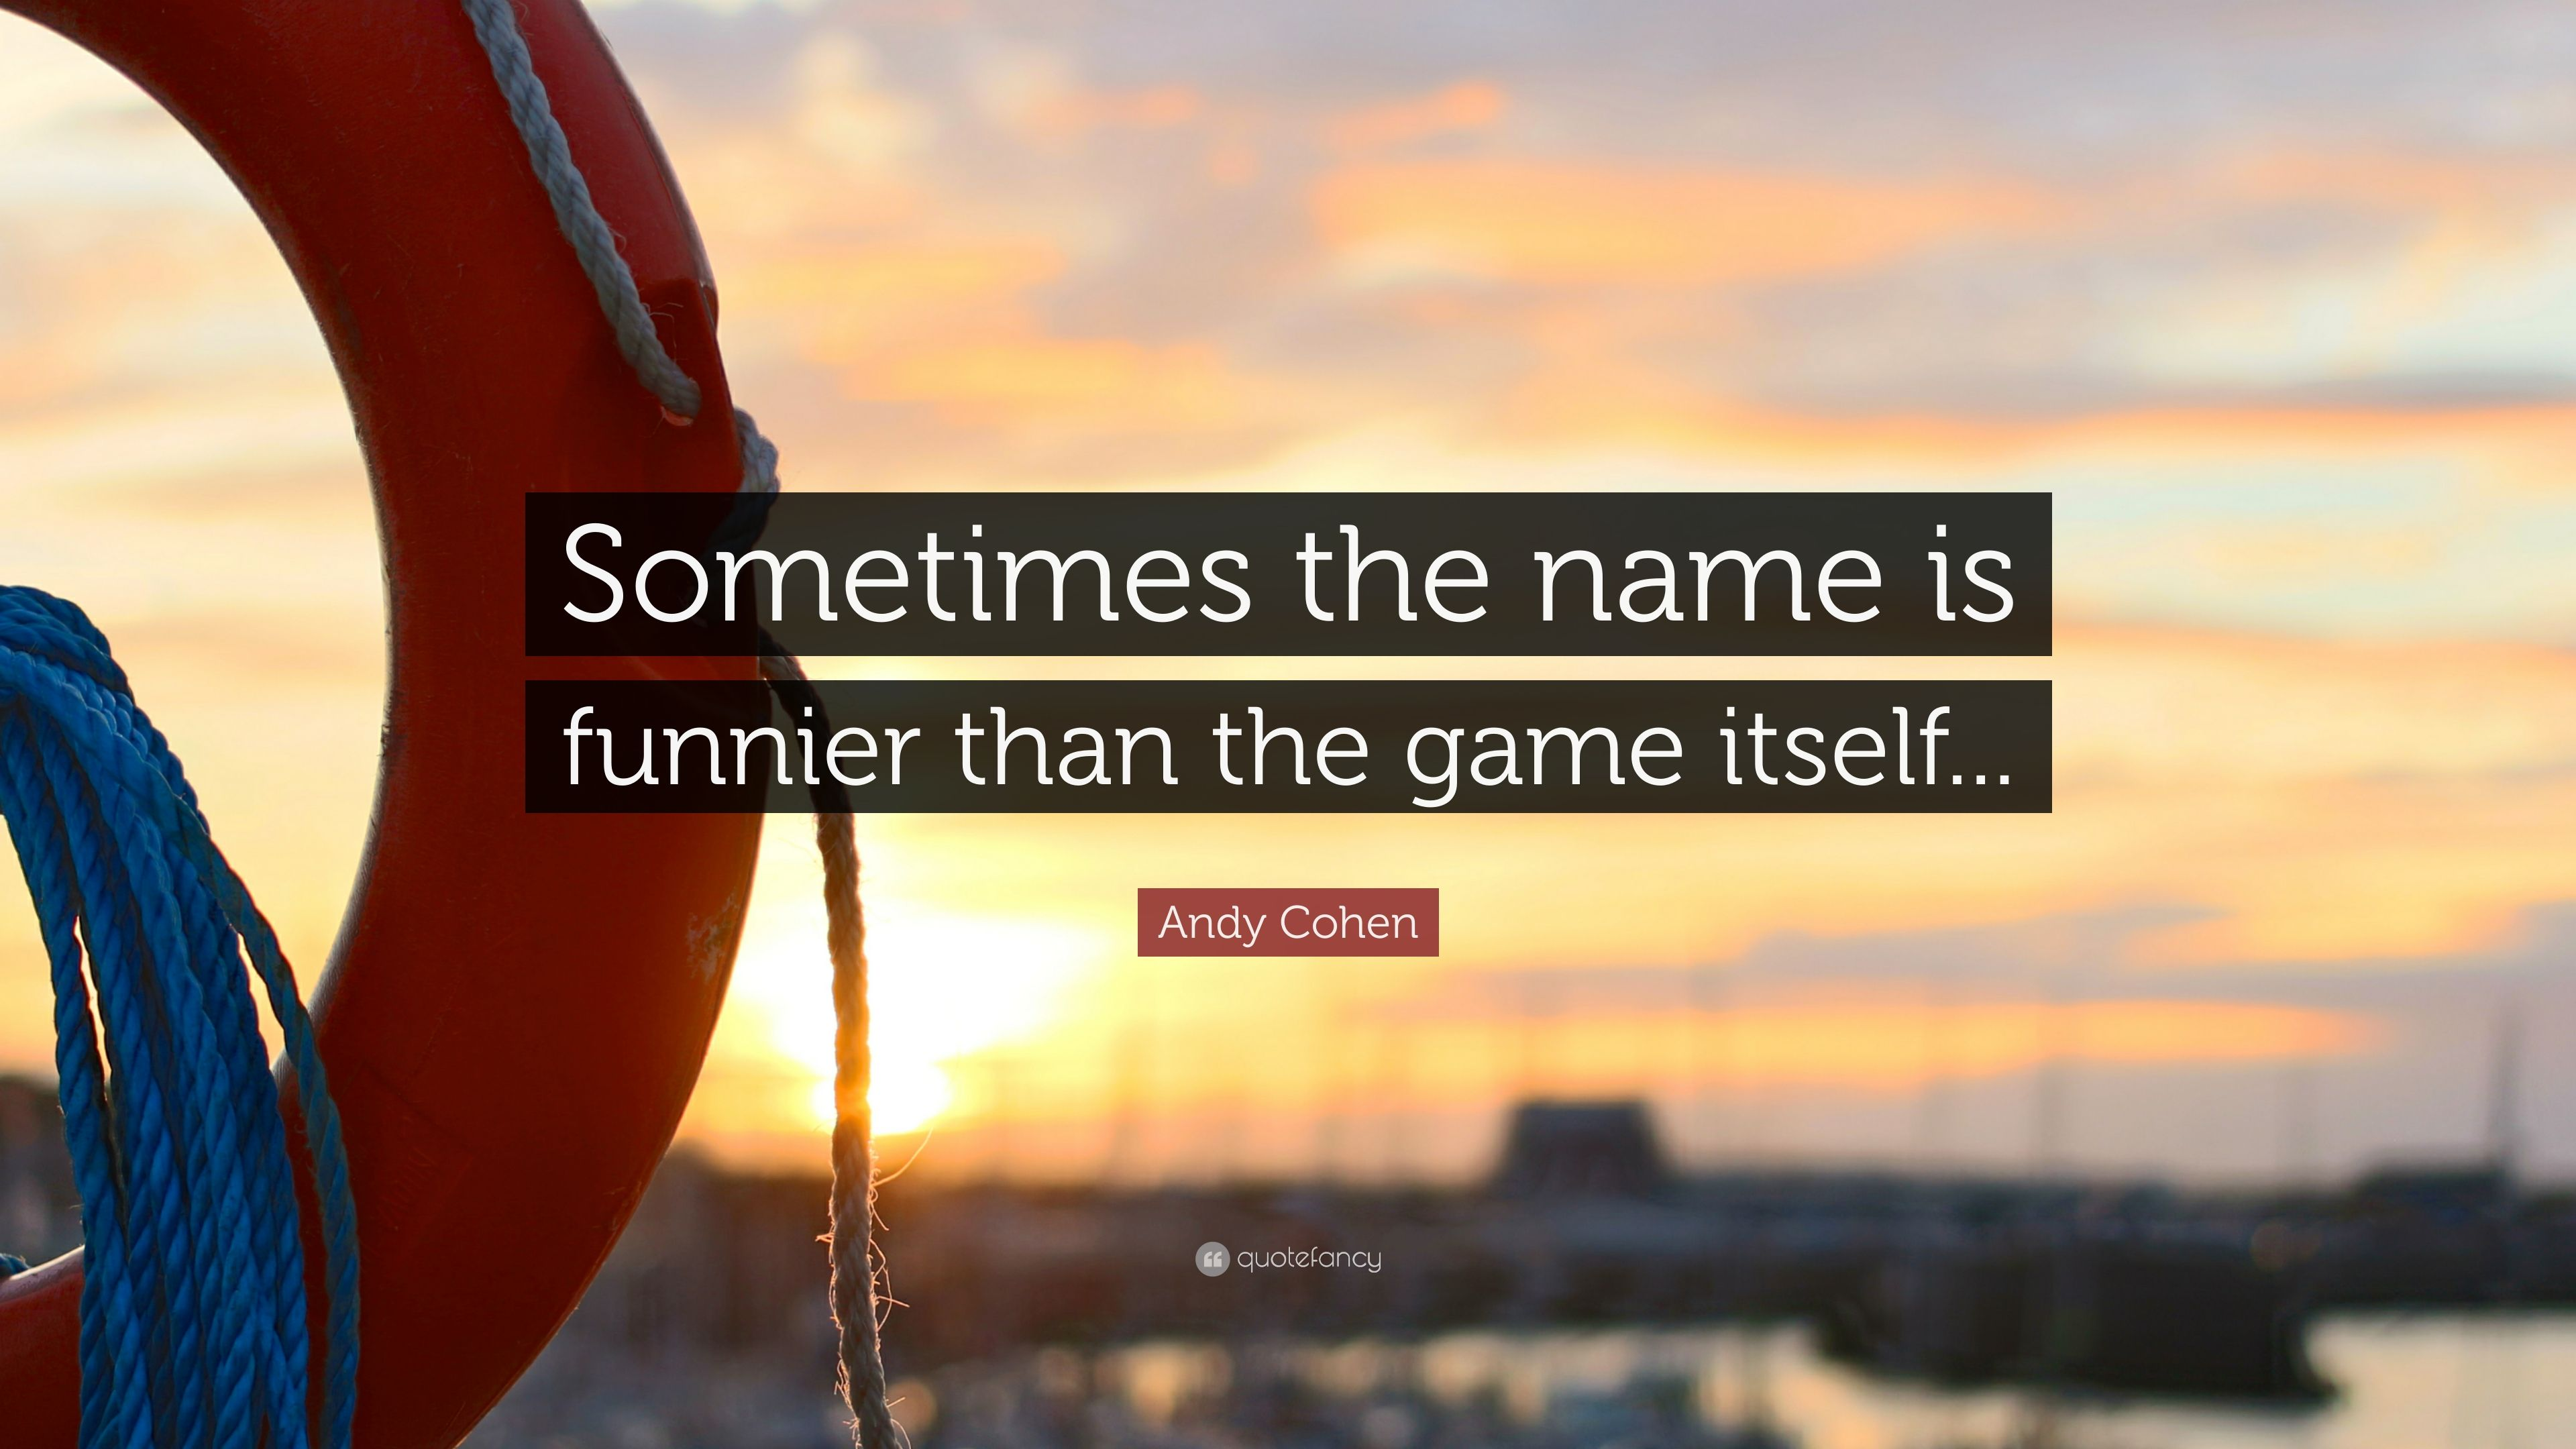 Andy cohen quote sometimes the name is funnier than the game andy cohen quote sometimes the name is funnier than the game itself voltagebd Image collections